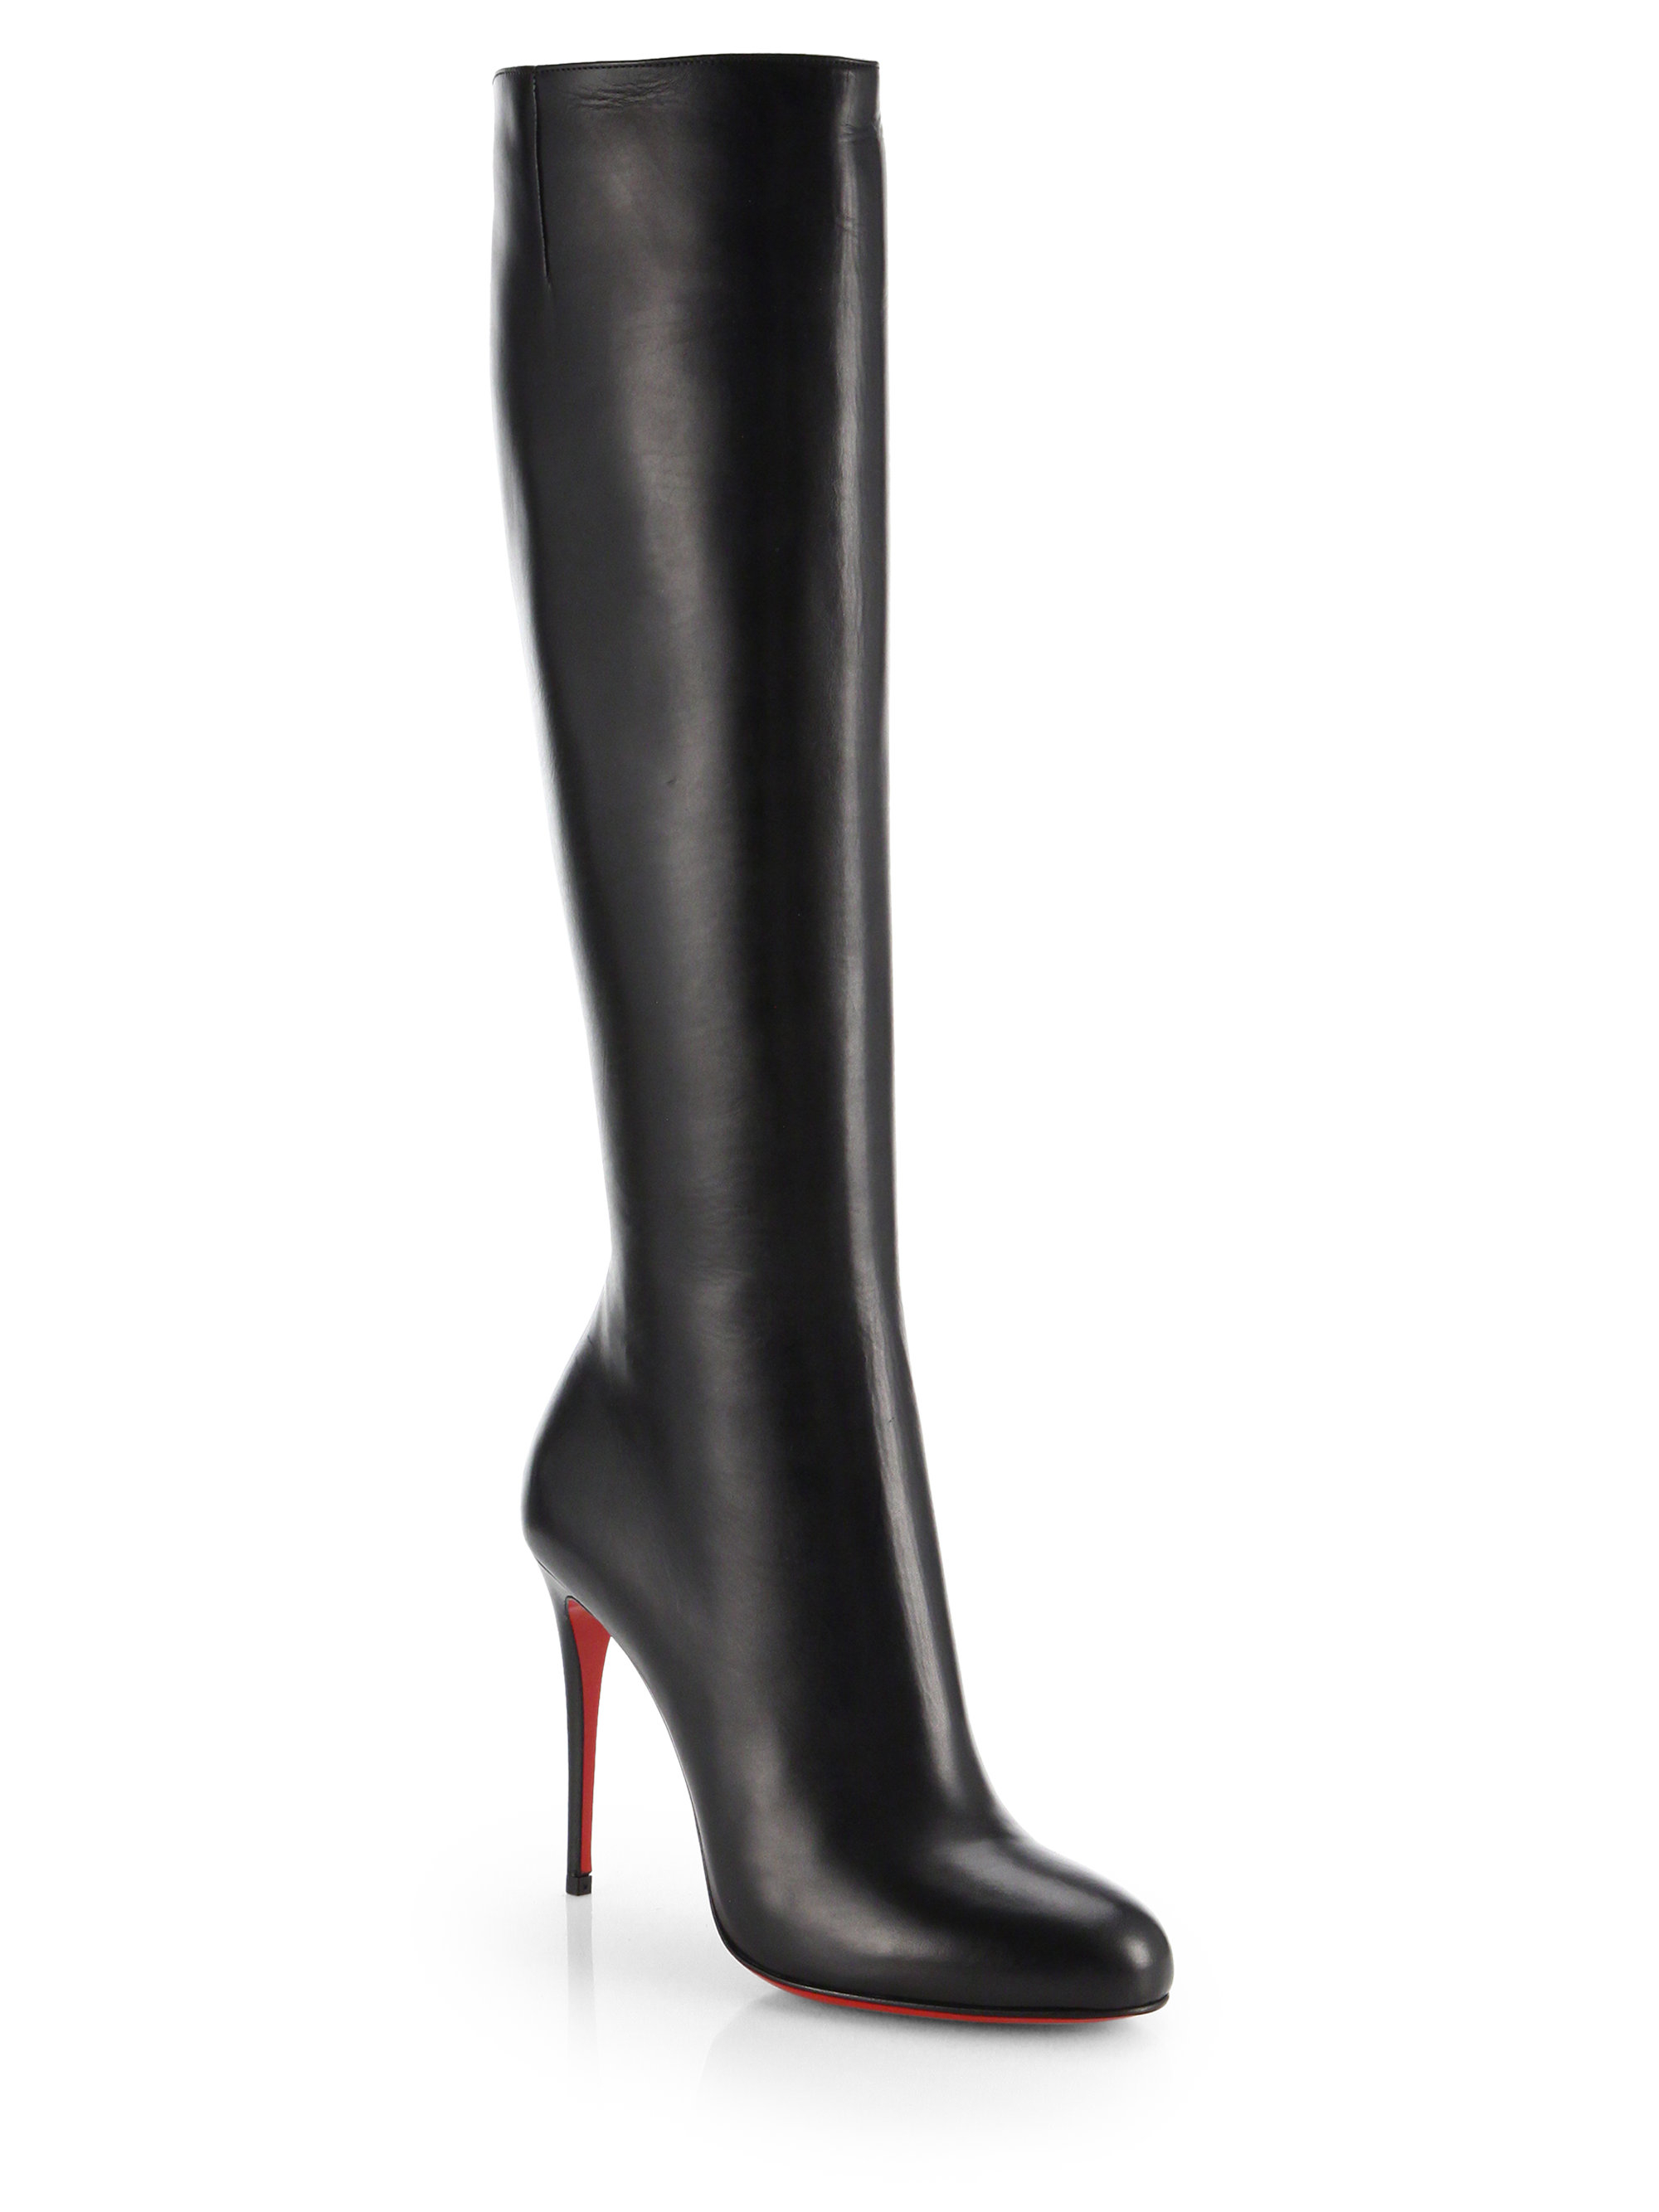 Christian louboutin Fifi Botta Suede Knee-high Boots in Black | Lyst